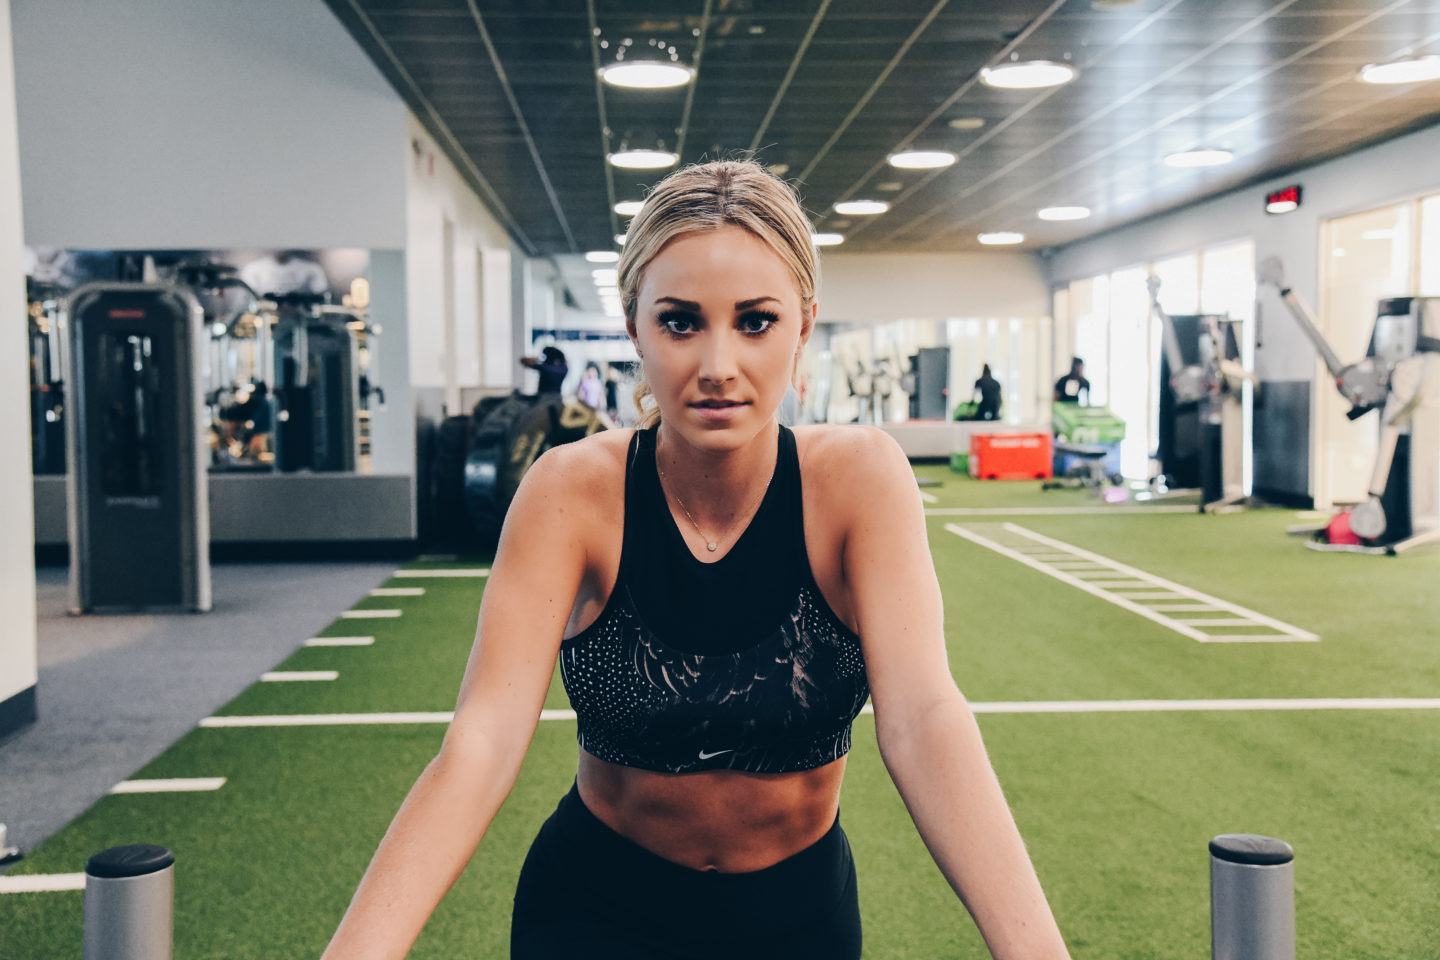 Cowboys Fit -Dallas Fashion Model, Fashion & Lifestyle Blogger - Peyton Mabry